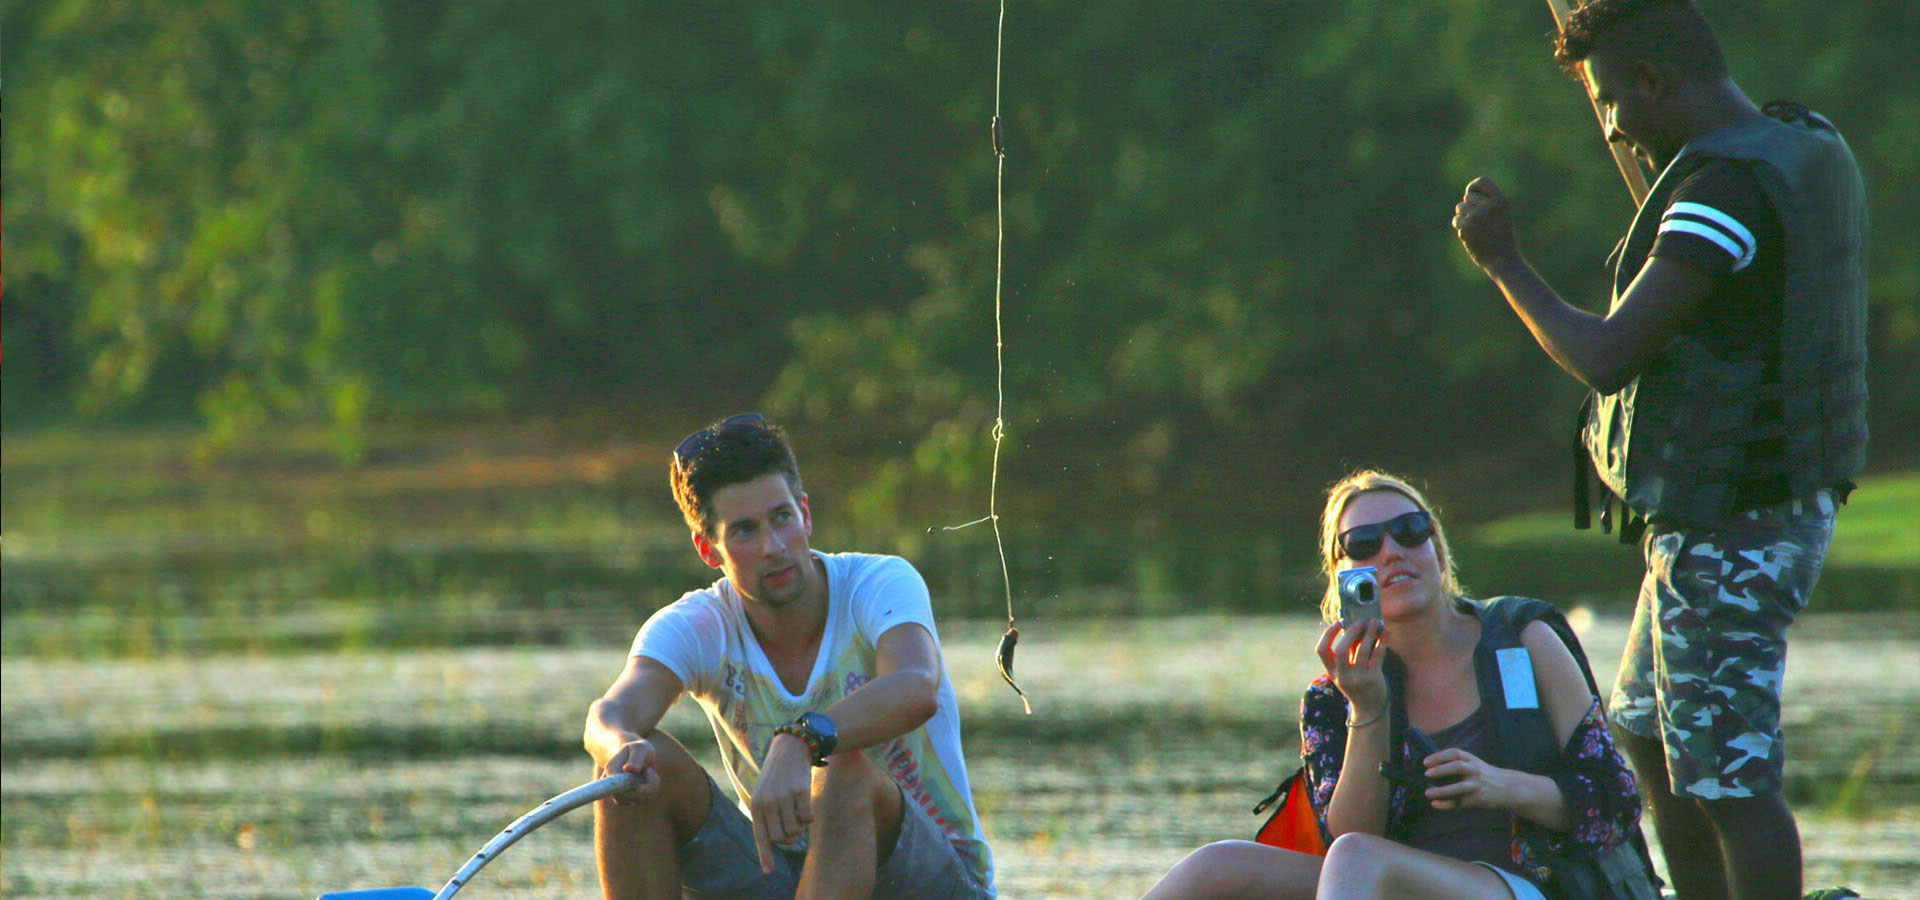 Go fishing with a local fisherman in a lake on a traditional catamaran - Fishing Trips in Sri Lanka - Fishing in Yala - Yala Fishing - Sri Lanka Fishing Trips